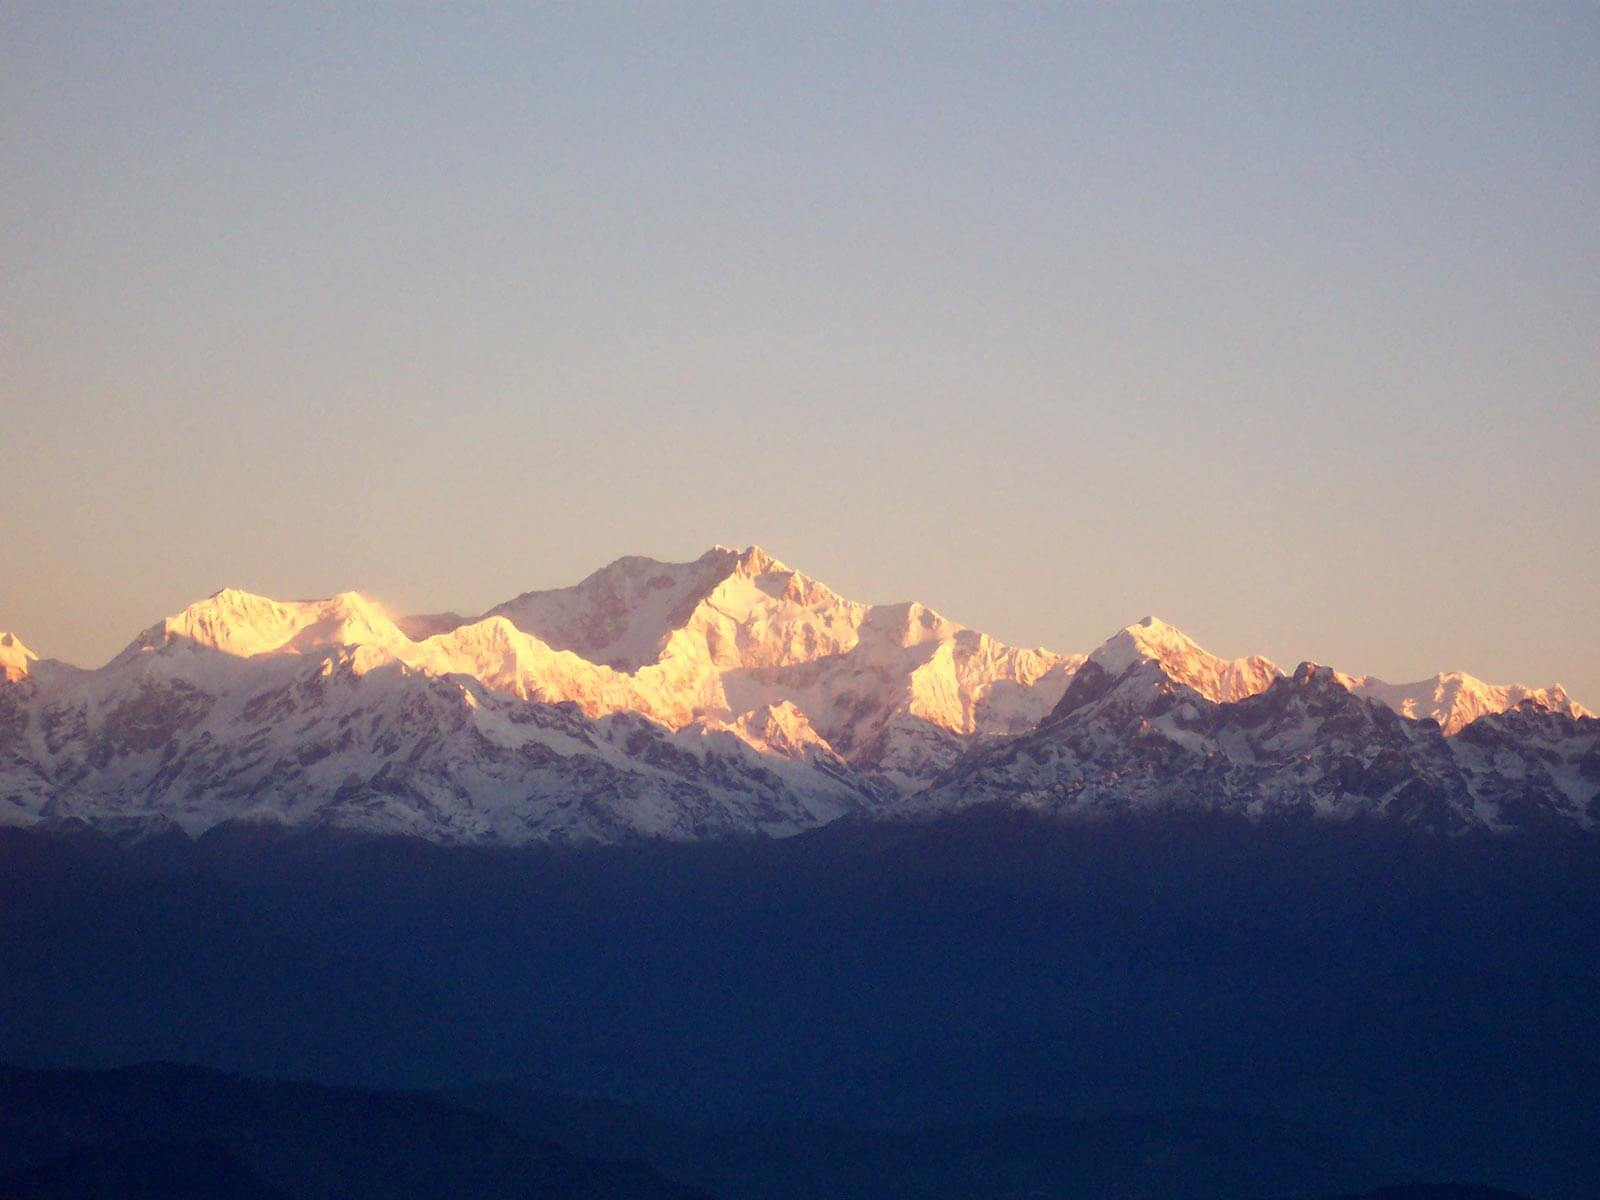 sikkim-darjeeling-travelco-tour-packages-3